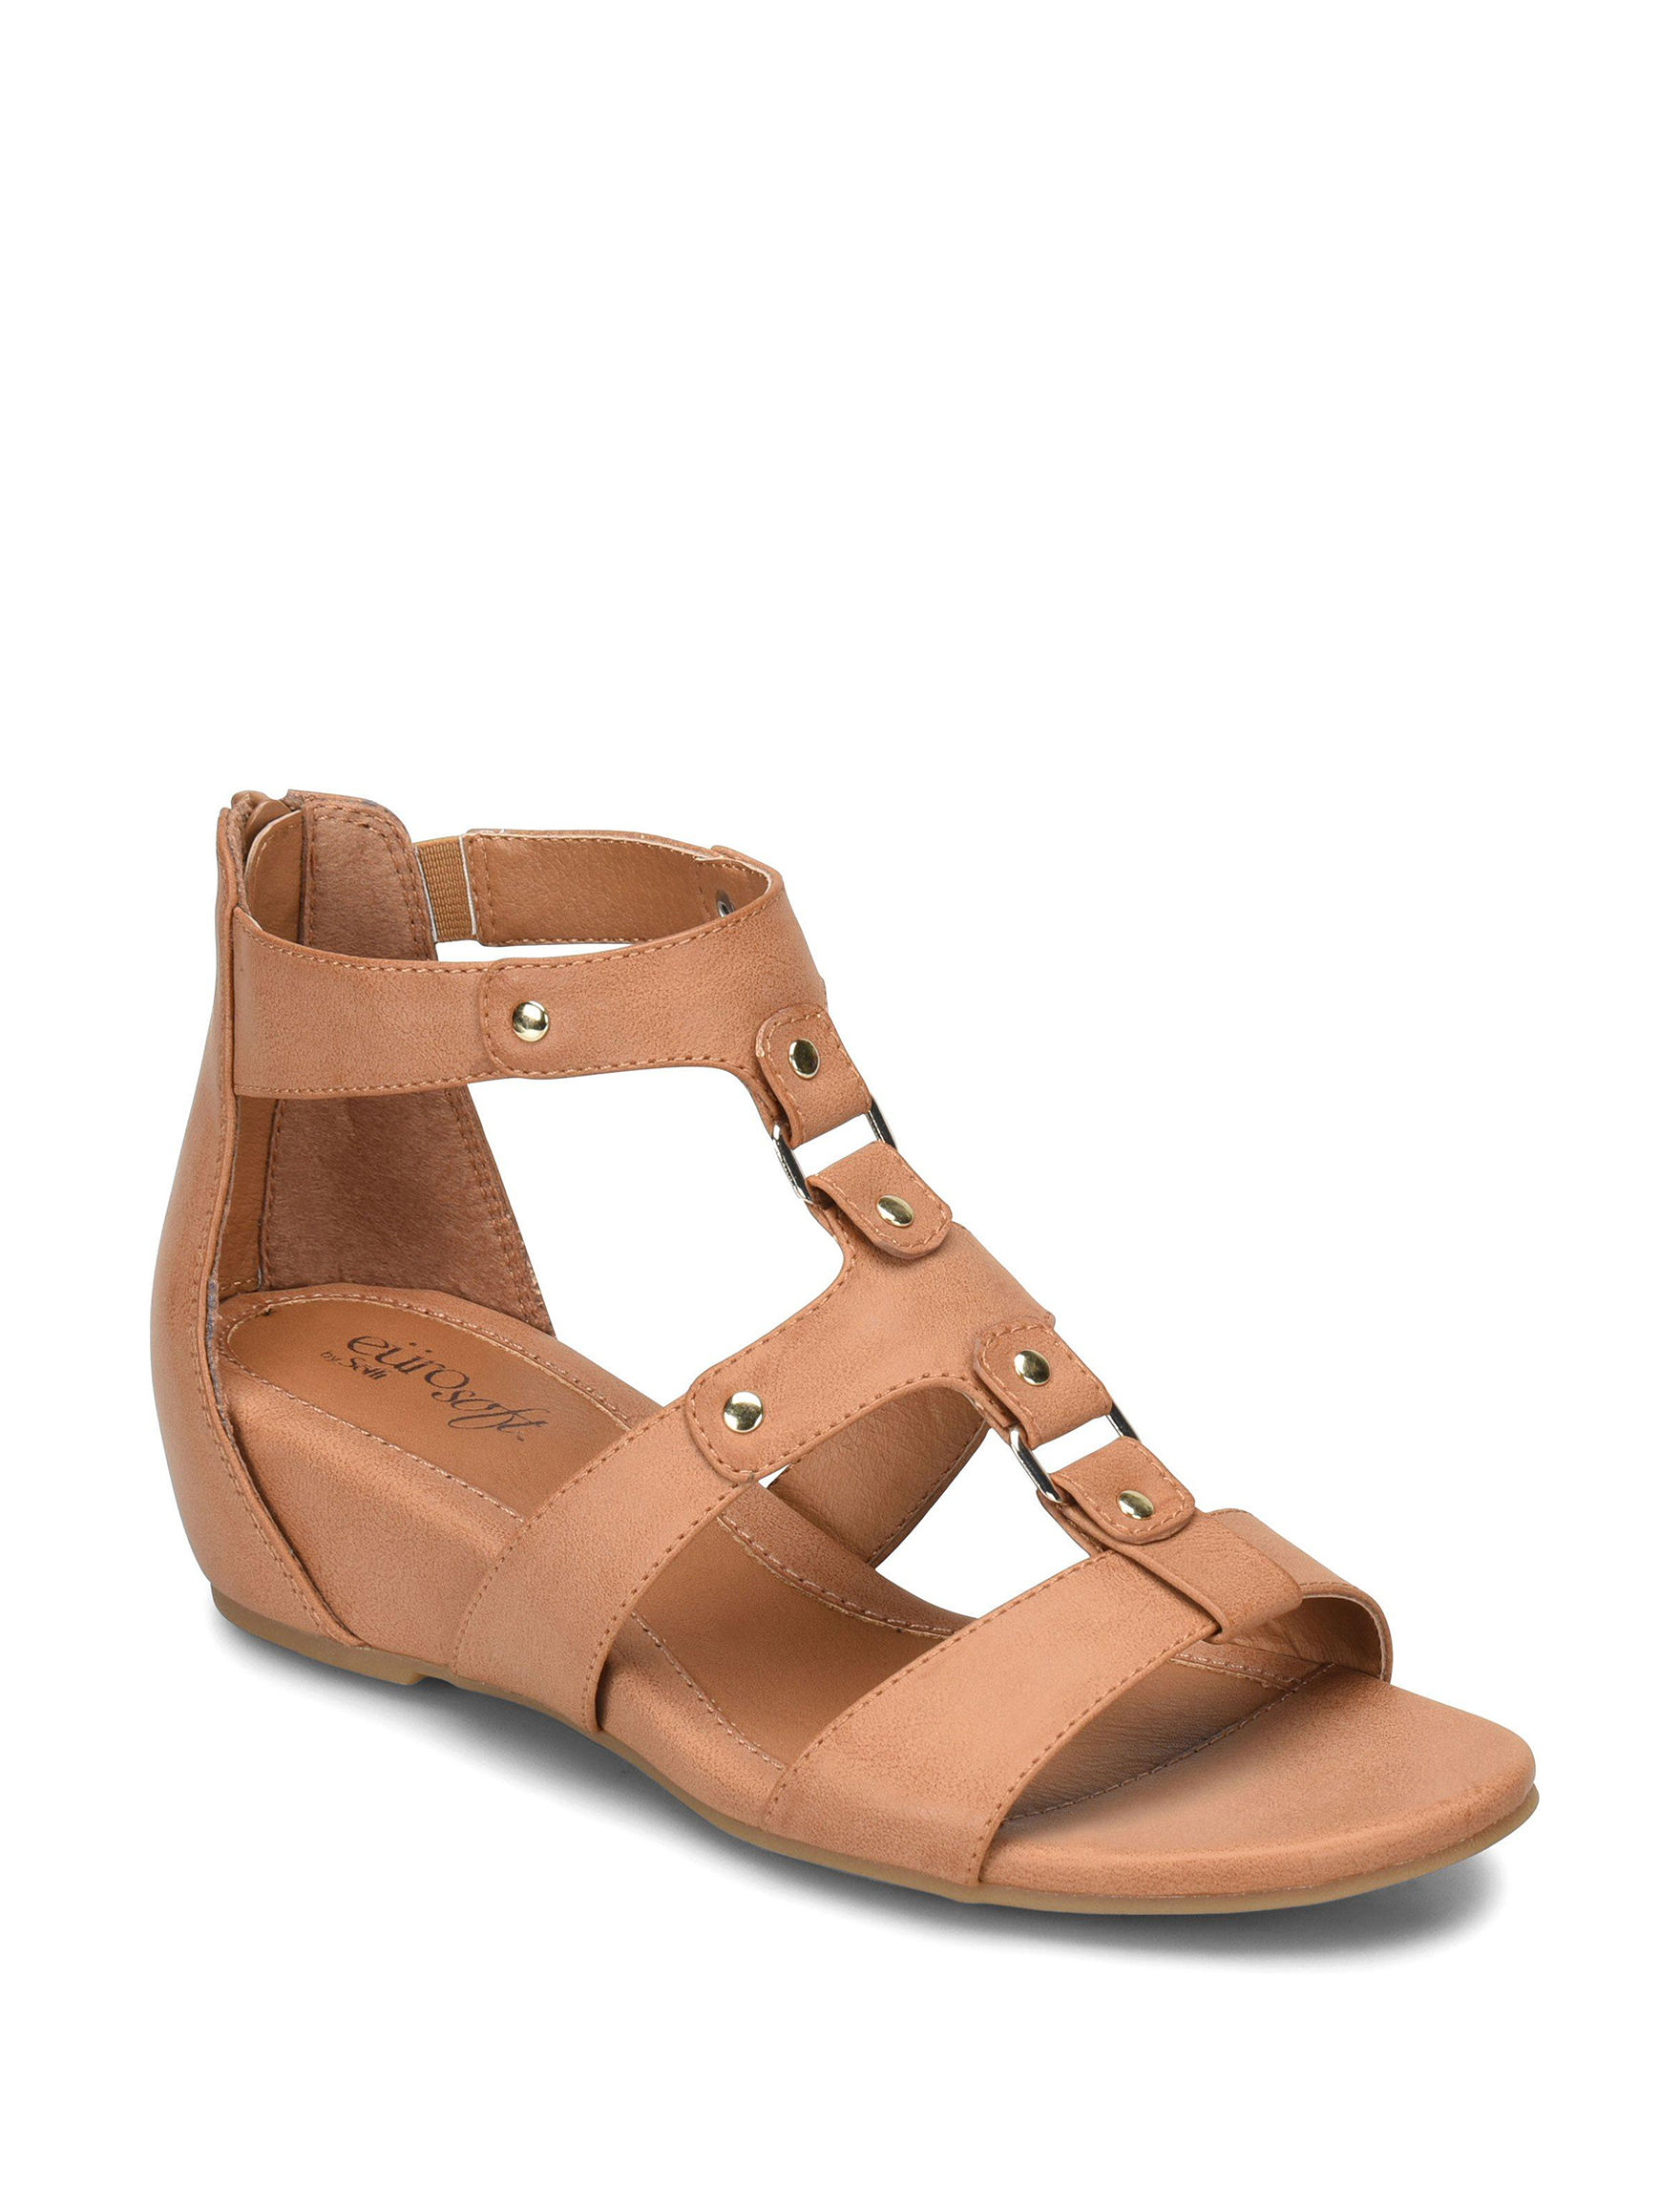 Eurosoft Toast Gladiators Wedge Sandals Comfort